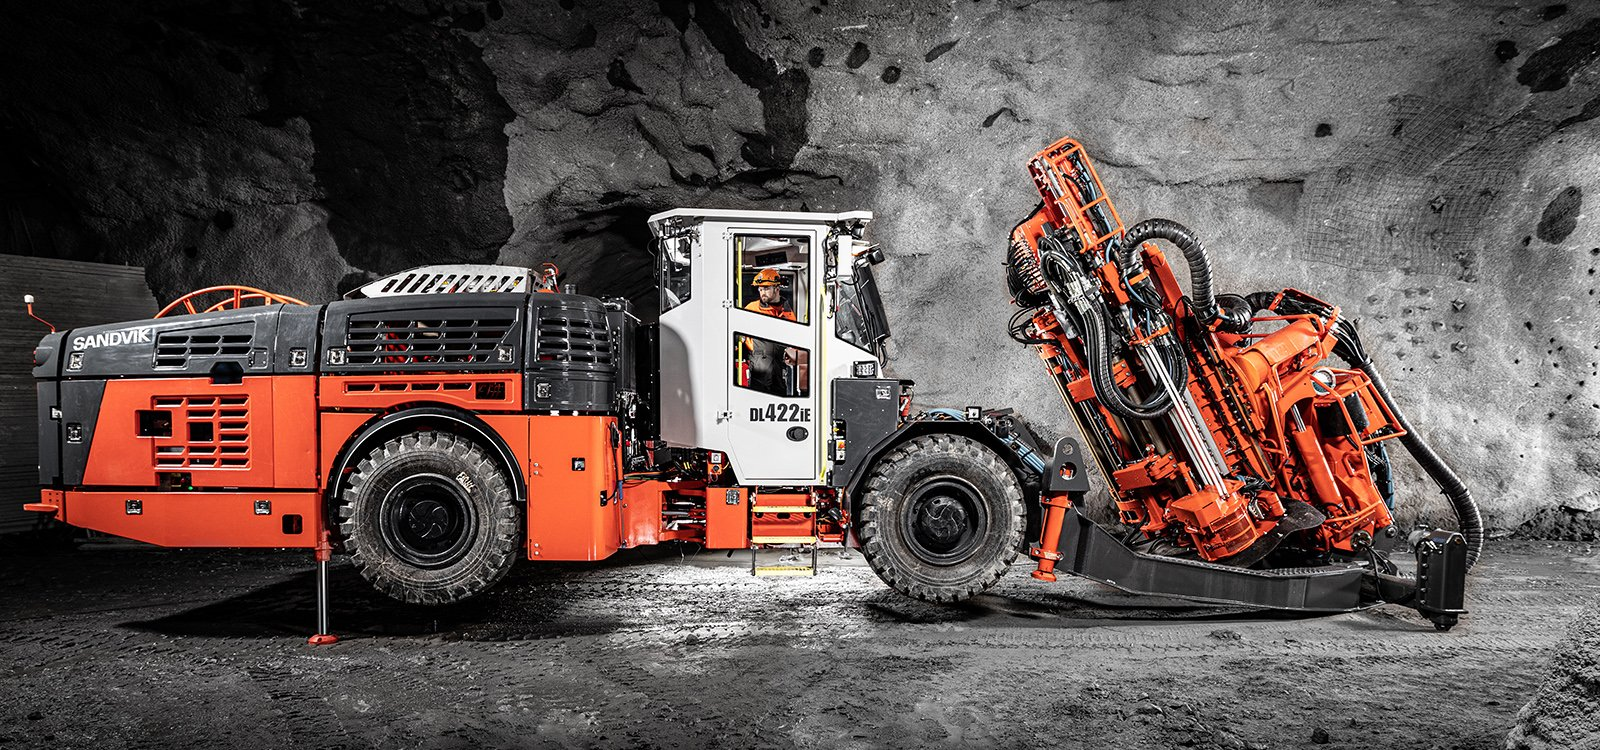 Providing a strong and evolving automation package, Sandvik DL422iE delivers efficient, emissionless production drilling.